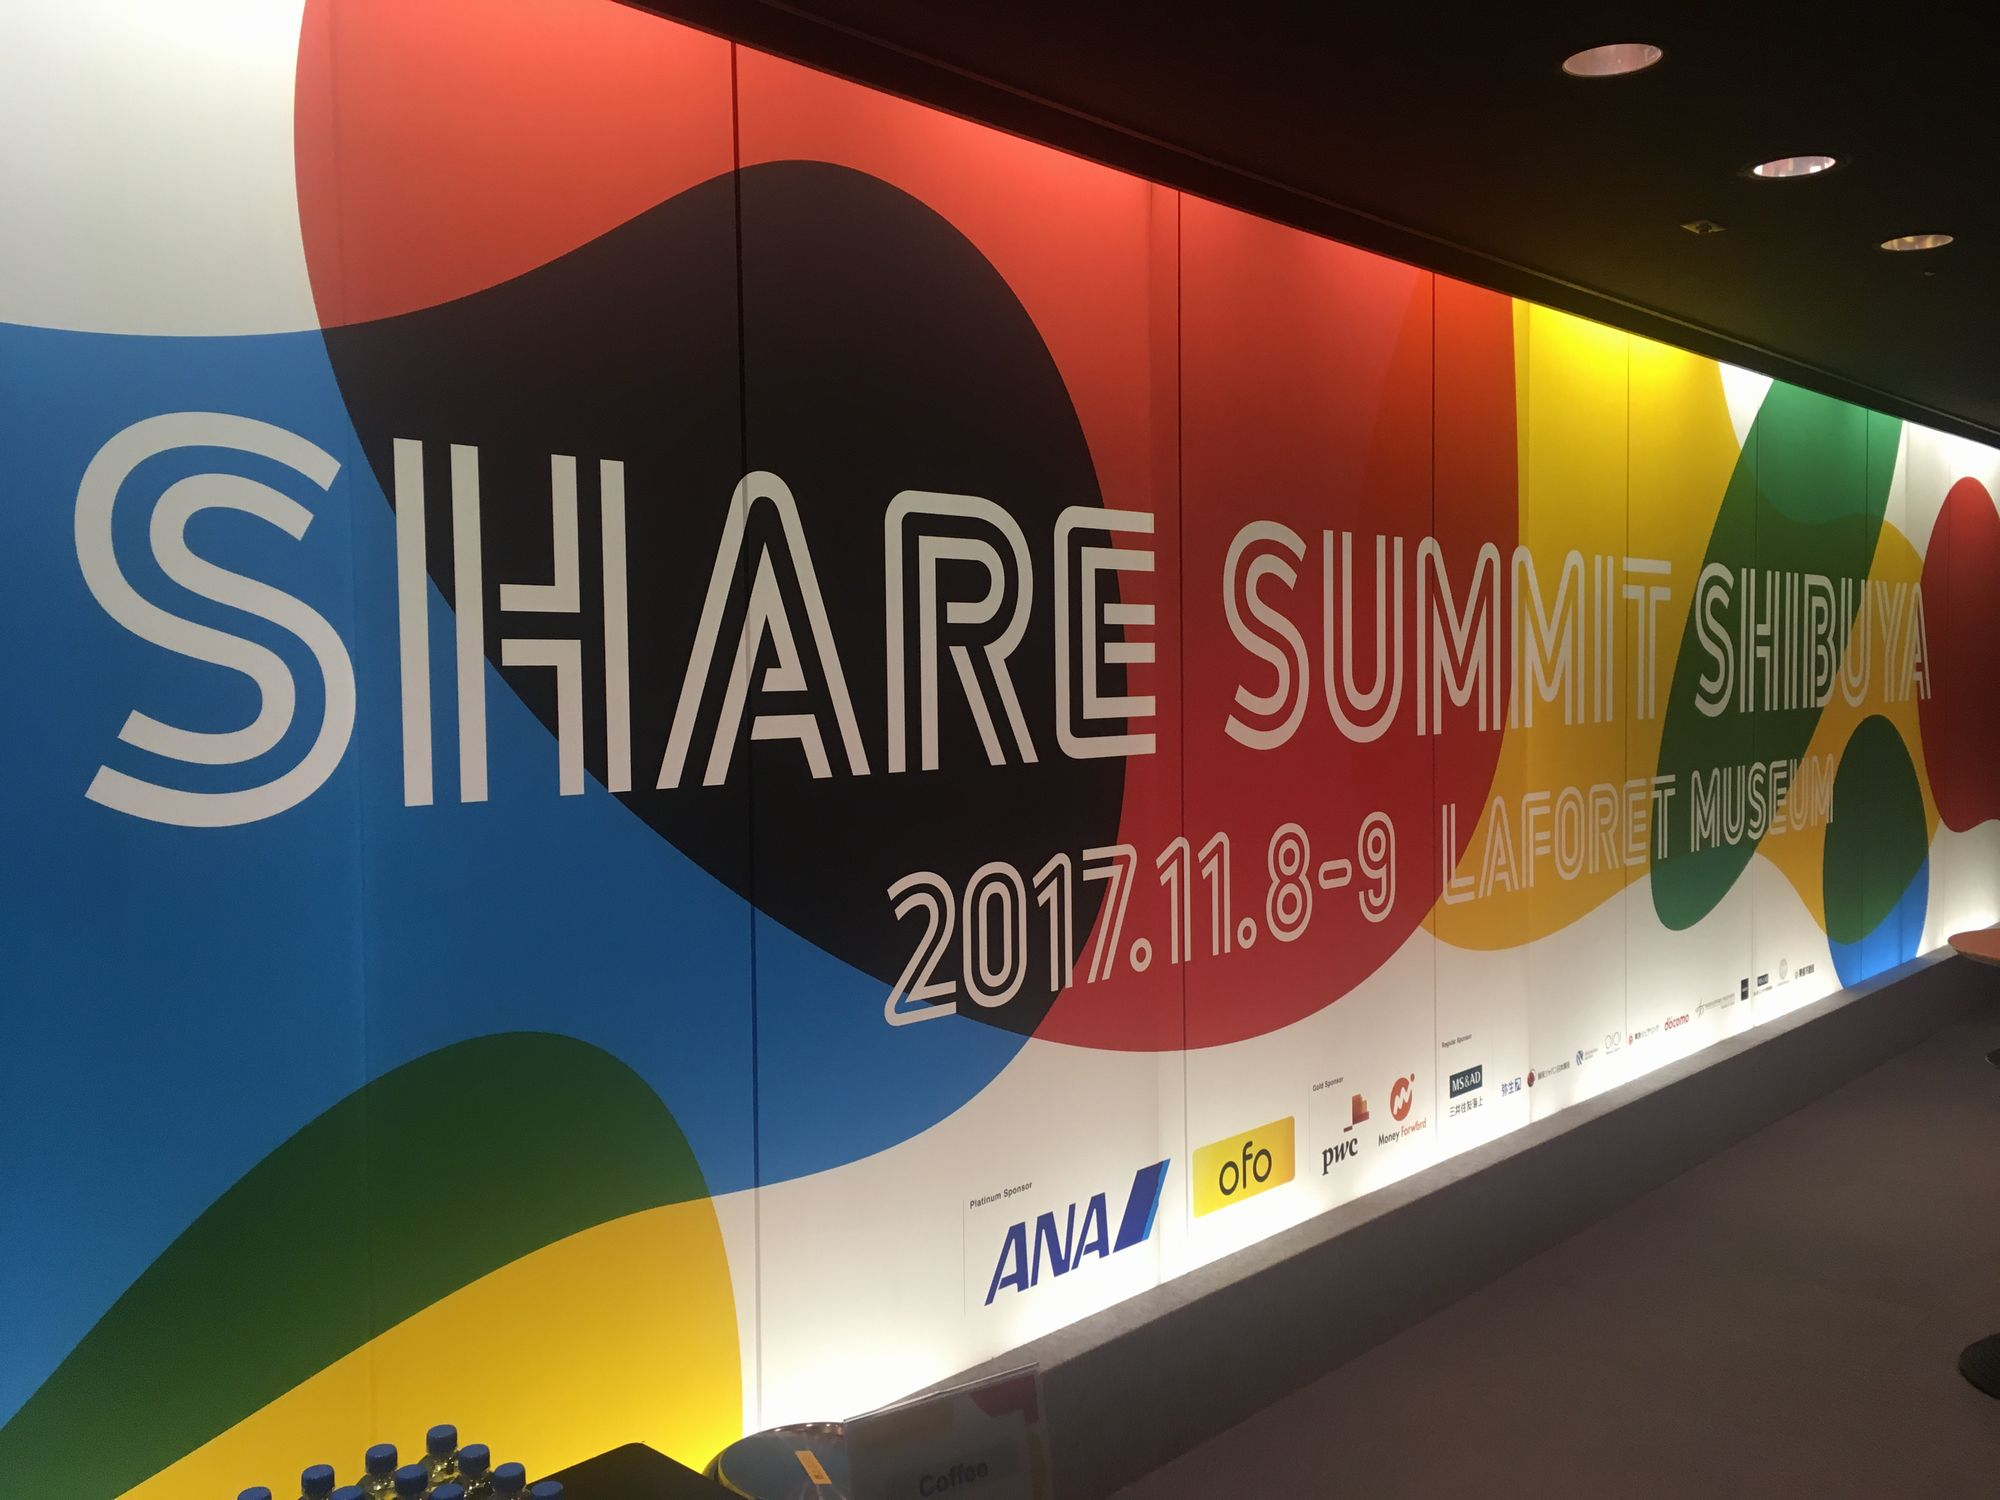 sharesummit_1.jpeg